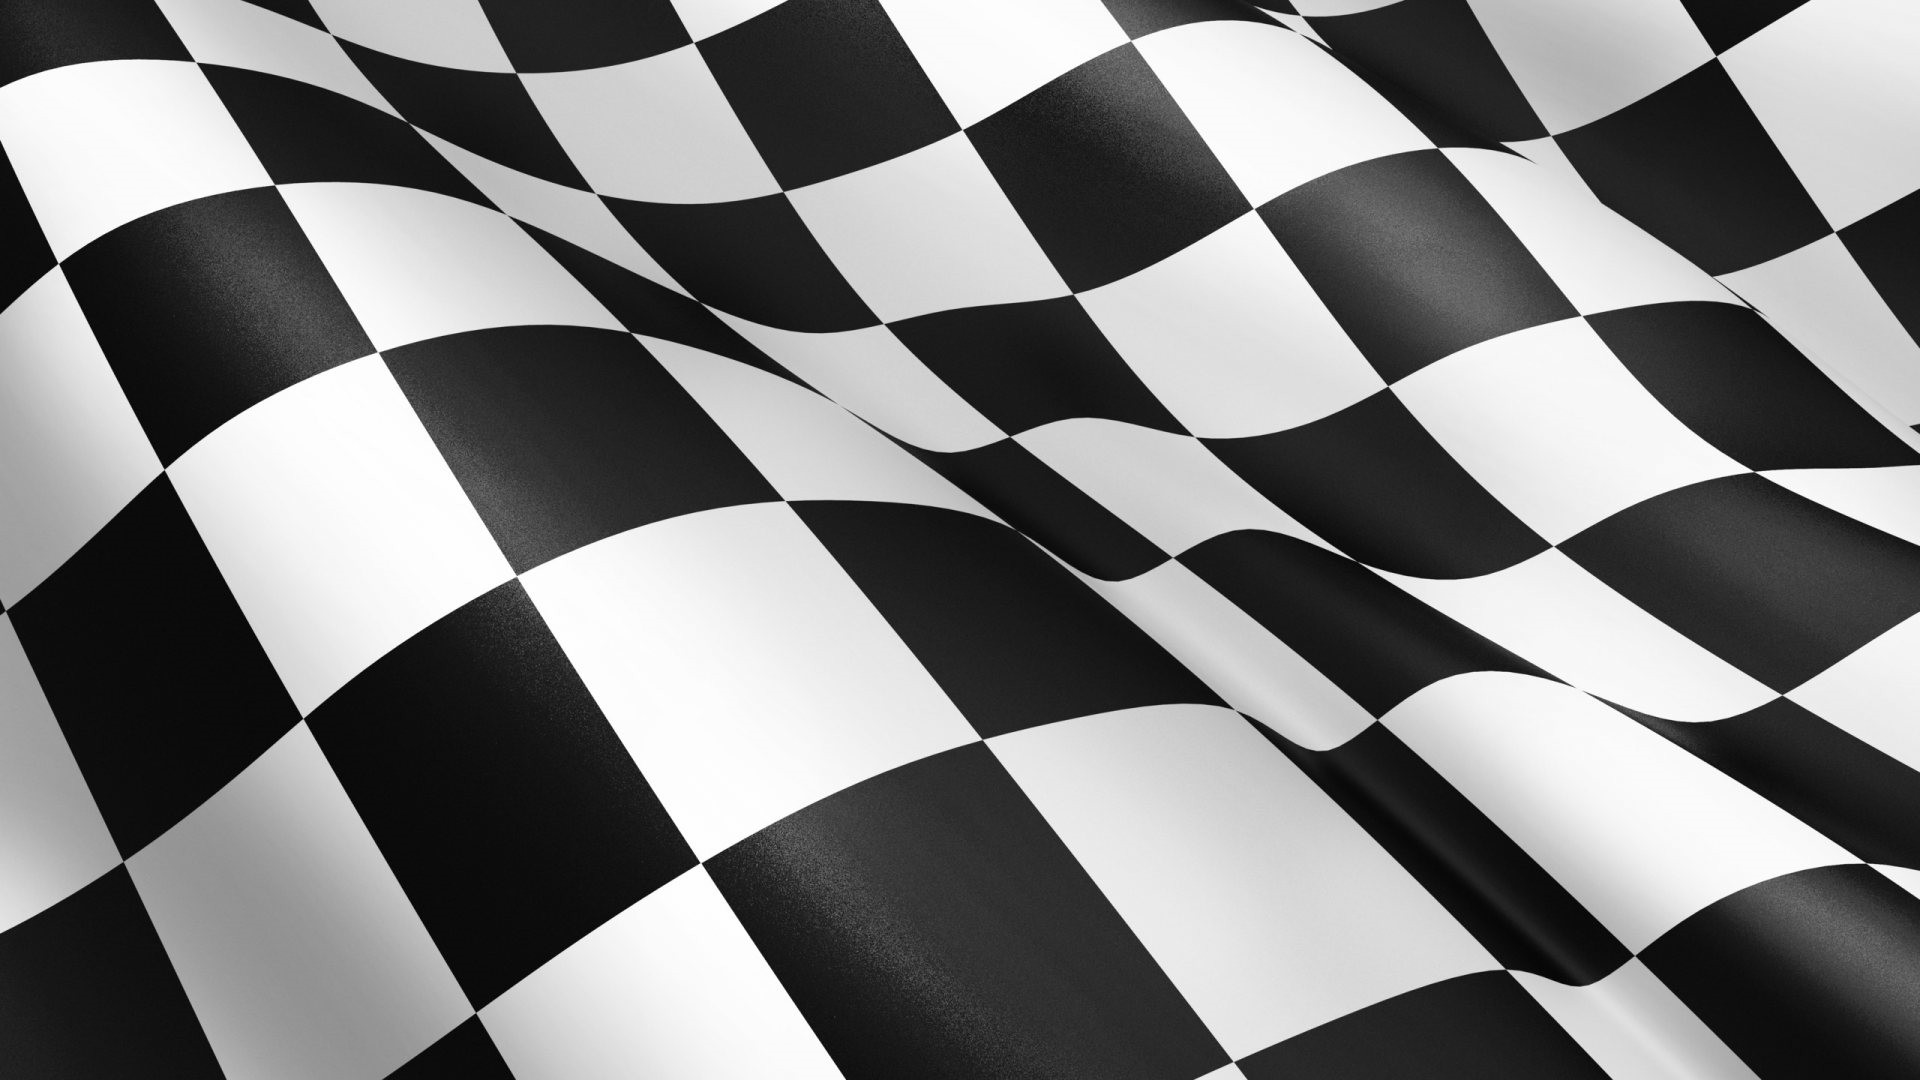 Checkered Free Wallpaper and Background